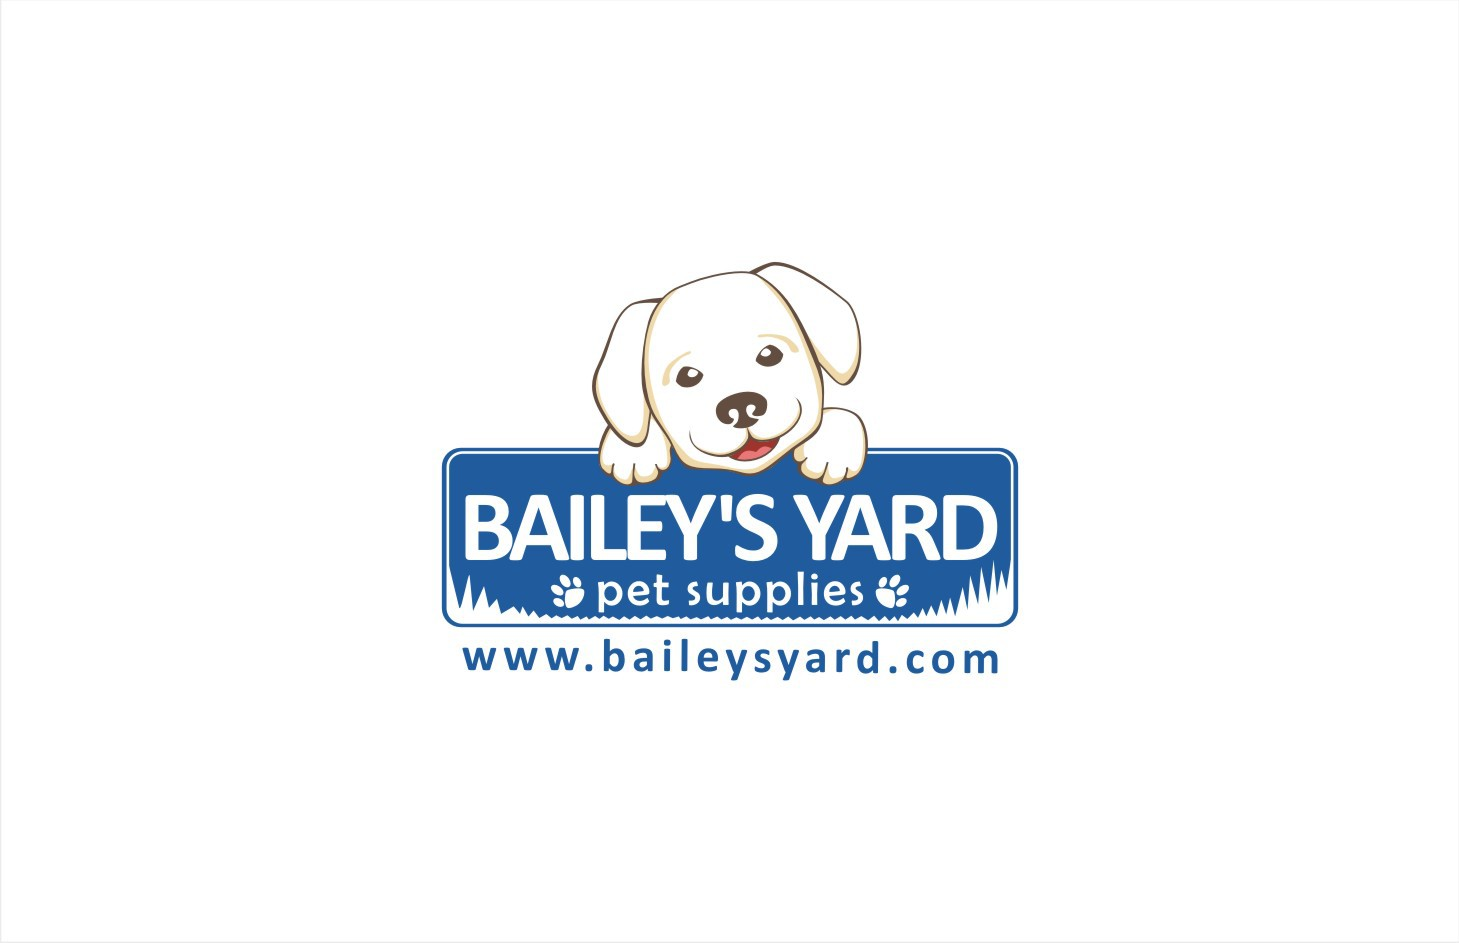 Create the logo for Bailey's Yard -- Give Us Your Best!